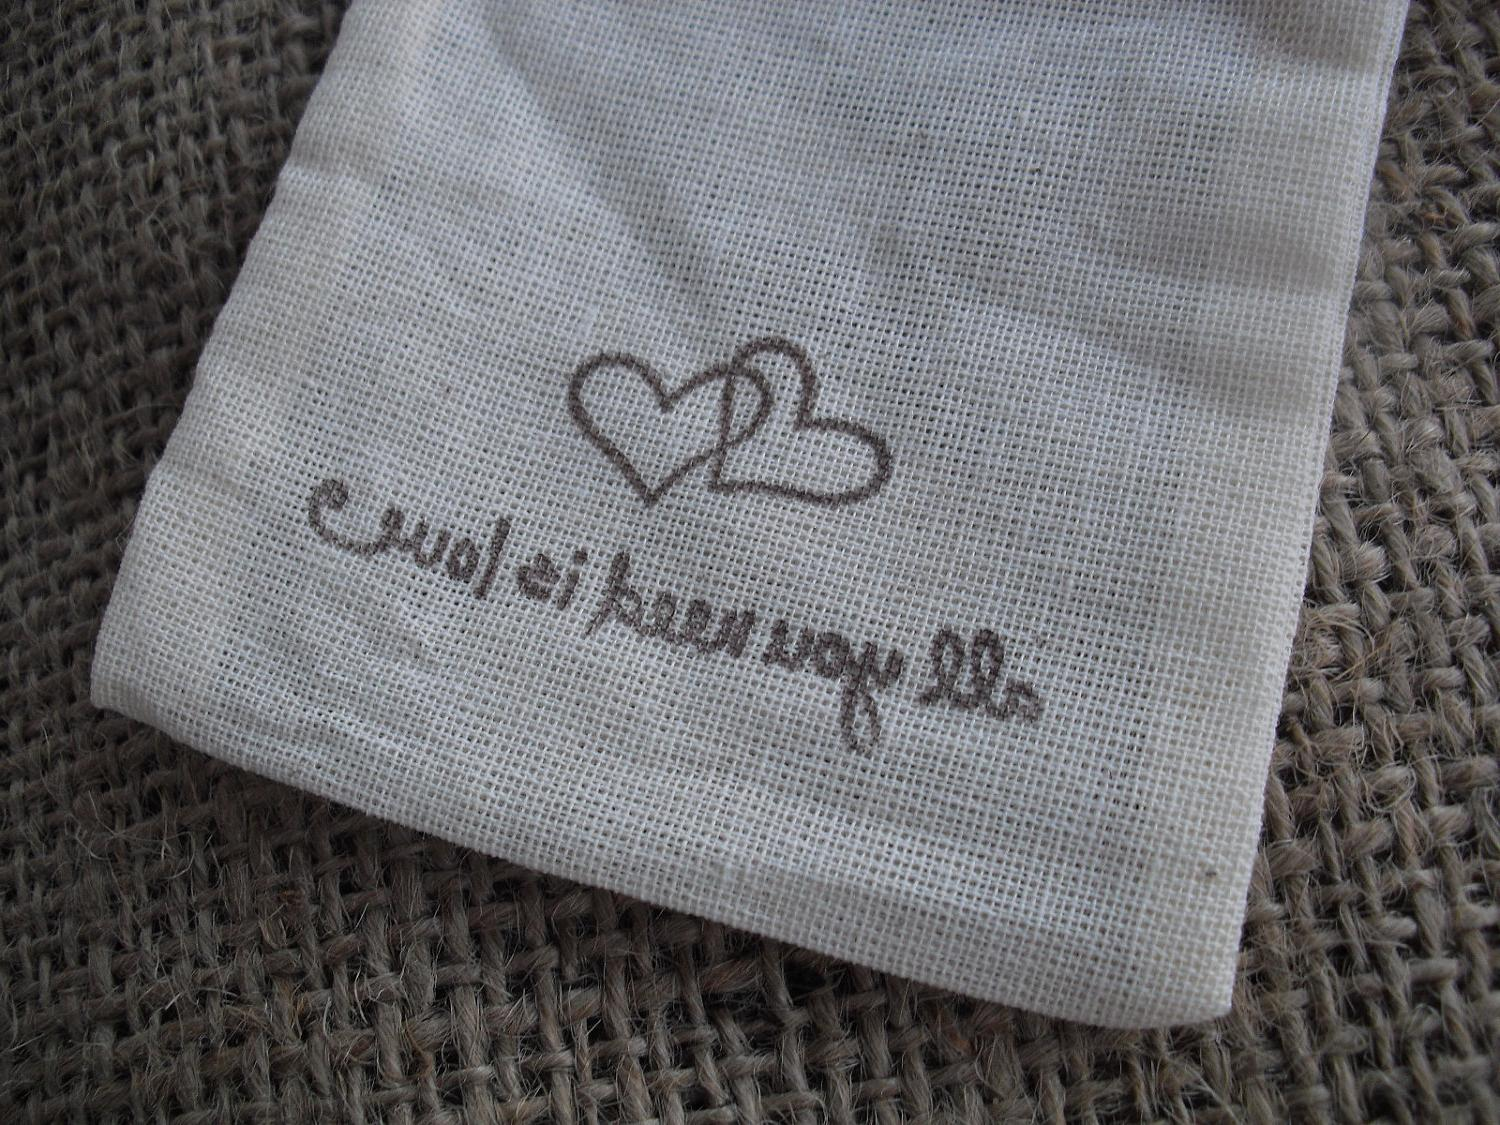 SET OF 50 All You Need Is Love Wedding Muslin Favor Bags Gift Bags or Candy